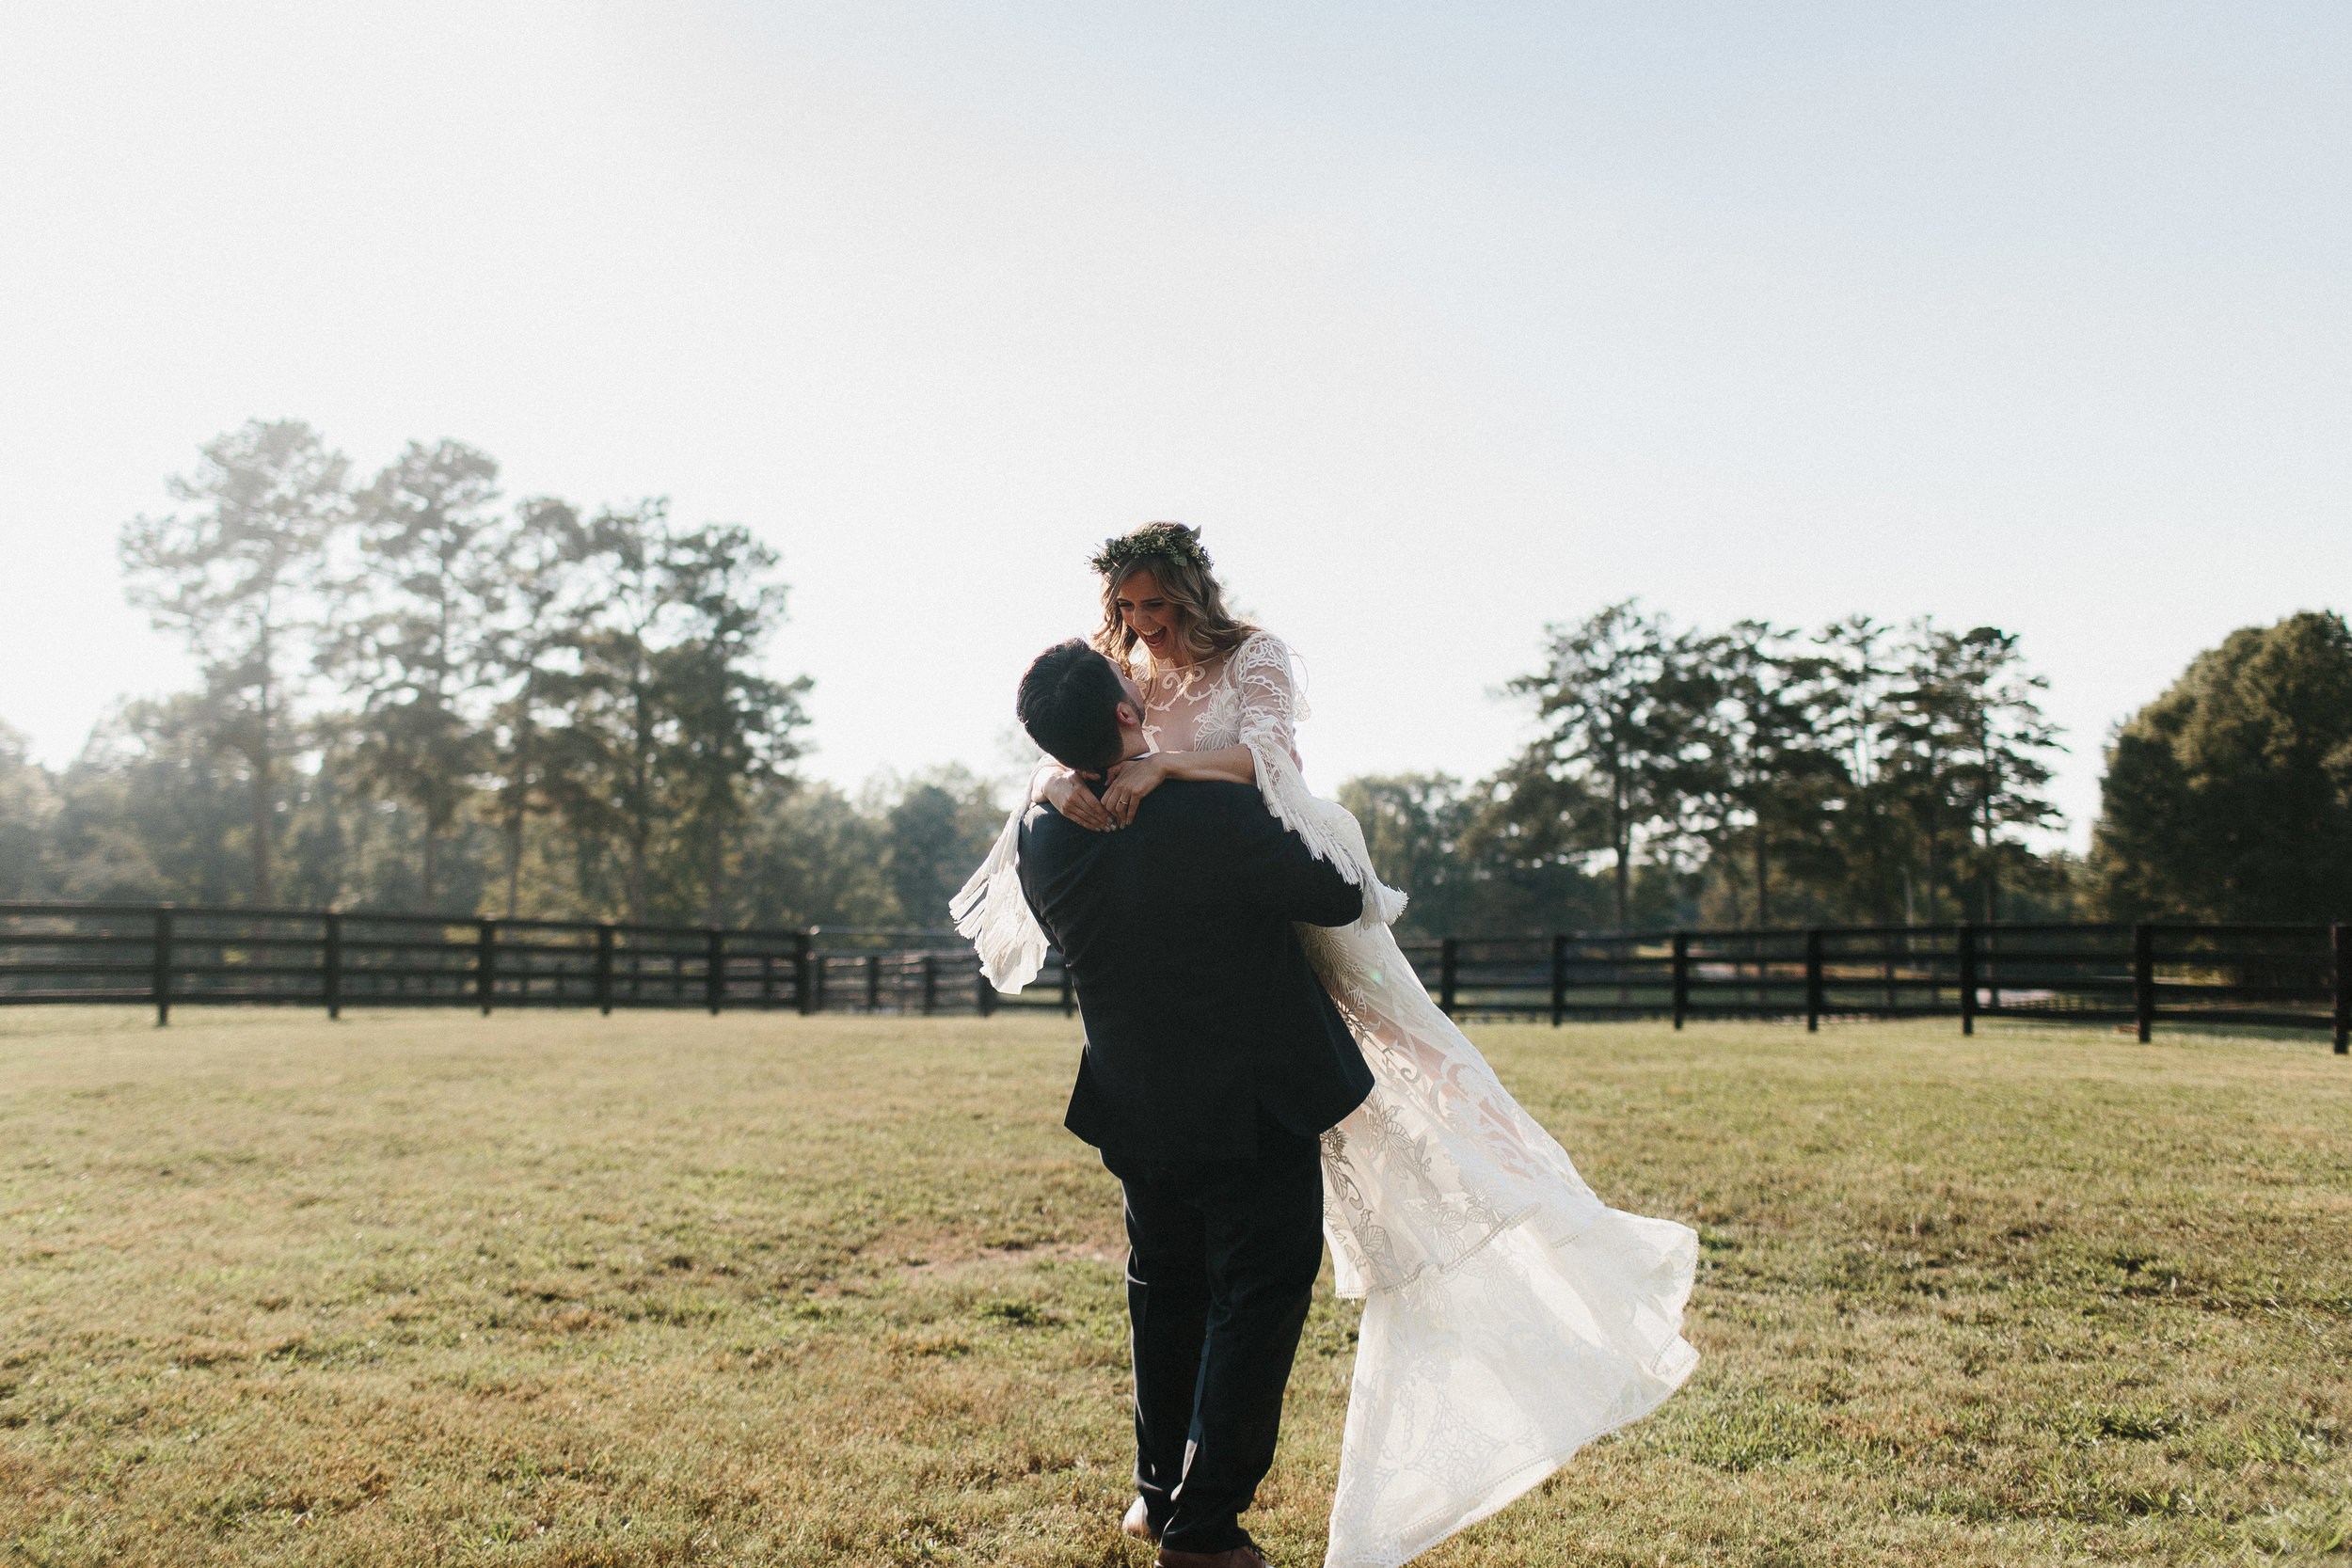 cherry_hollow_farms_industrial_unique_venue_georgia_serenbe_wedding_boho_midsummer_nights_dream_river_west_1421.jpg